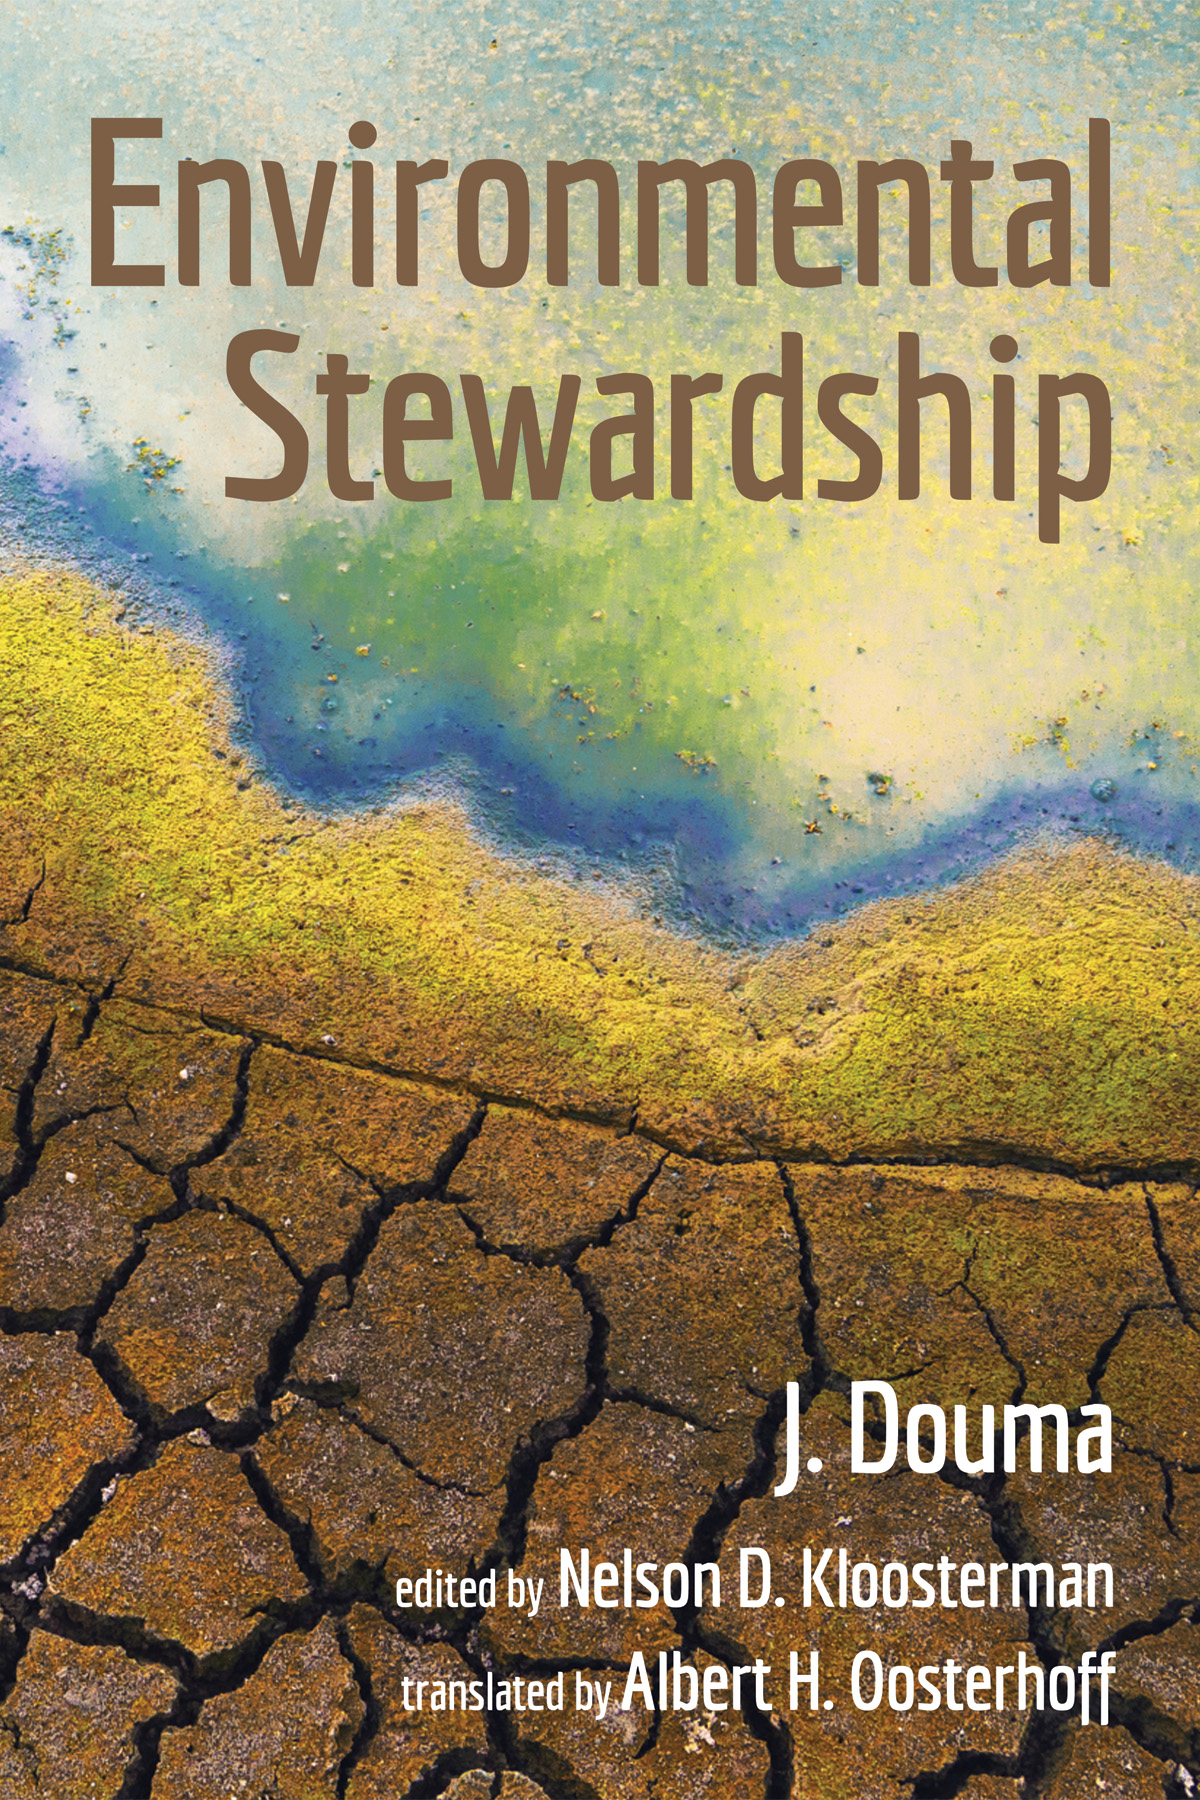 environment stewards Environmental stewardship dow's commitment to the protection of people and the environment is the common thread that runs through everything we do from habitat conservation projects to wildlife protection to recycling, texas operations demonstrates this commitment in many ways.